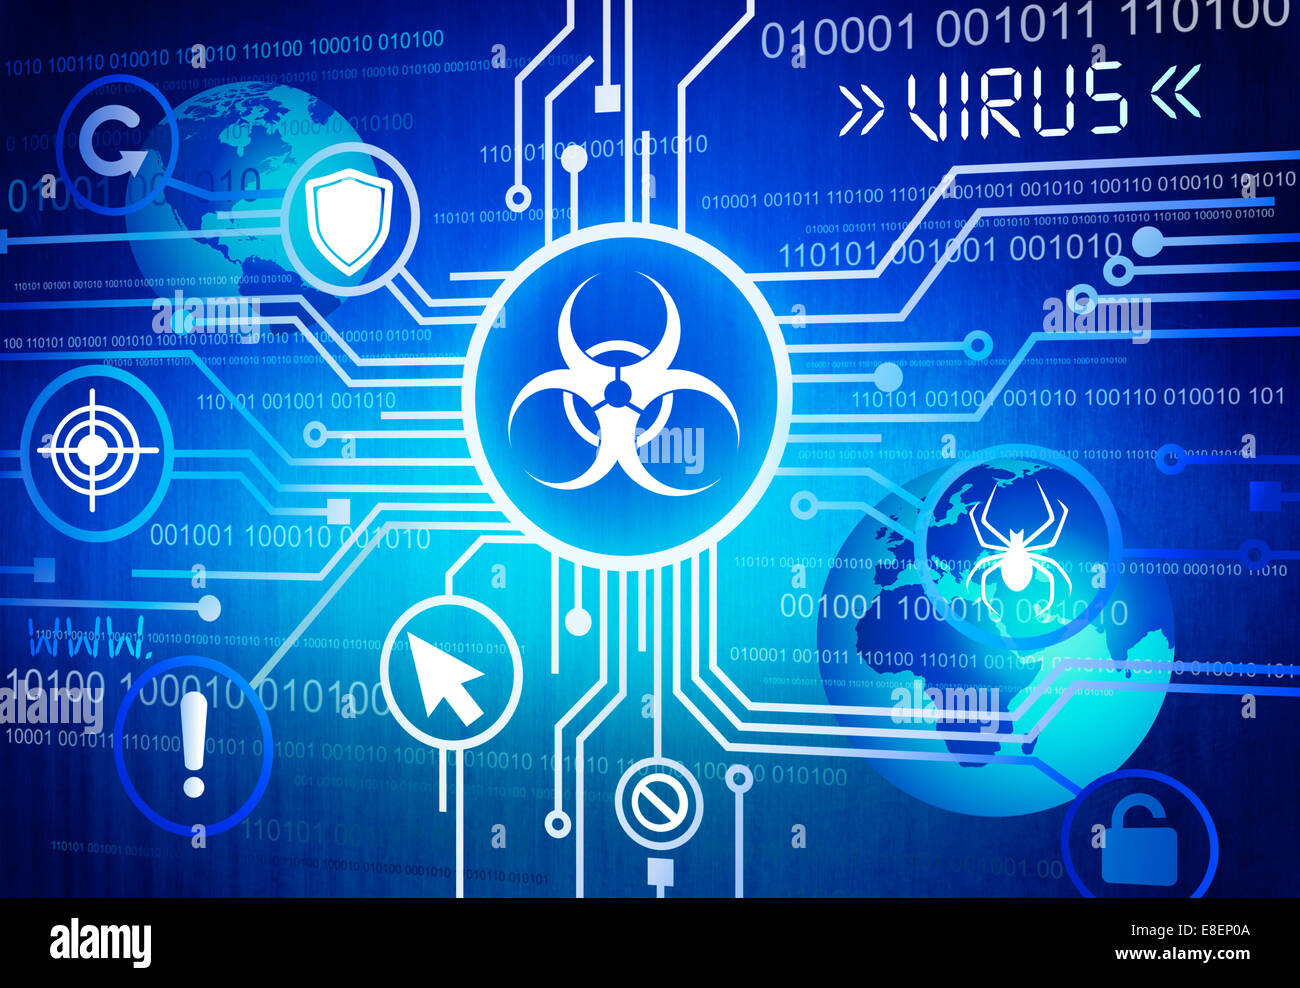 Digitally Generated Image of Online Virus Concept - Stock Image